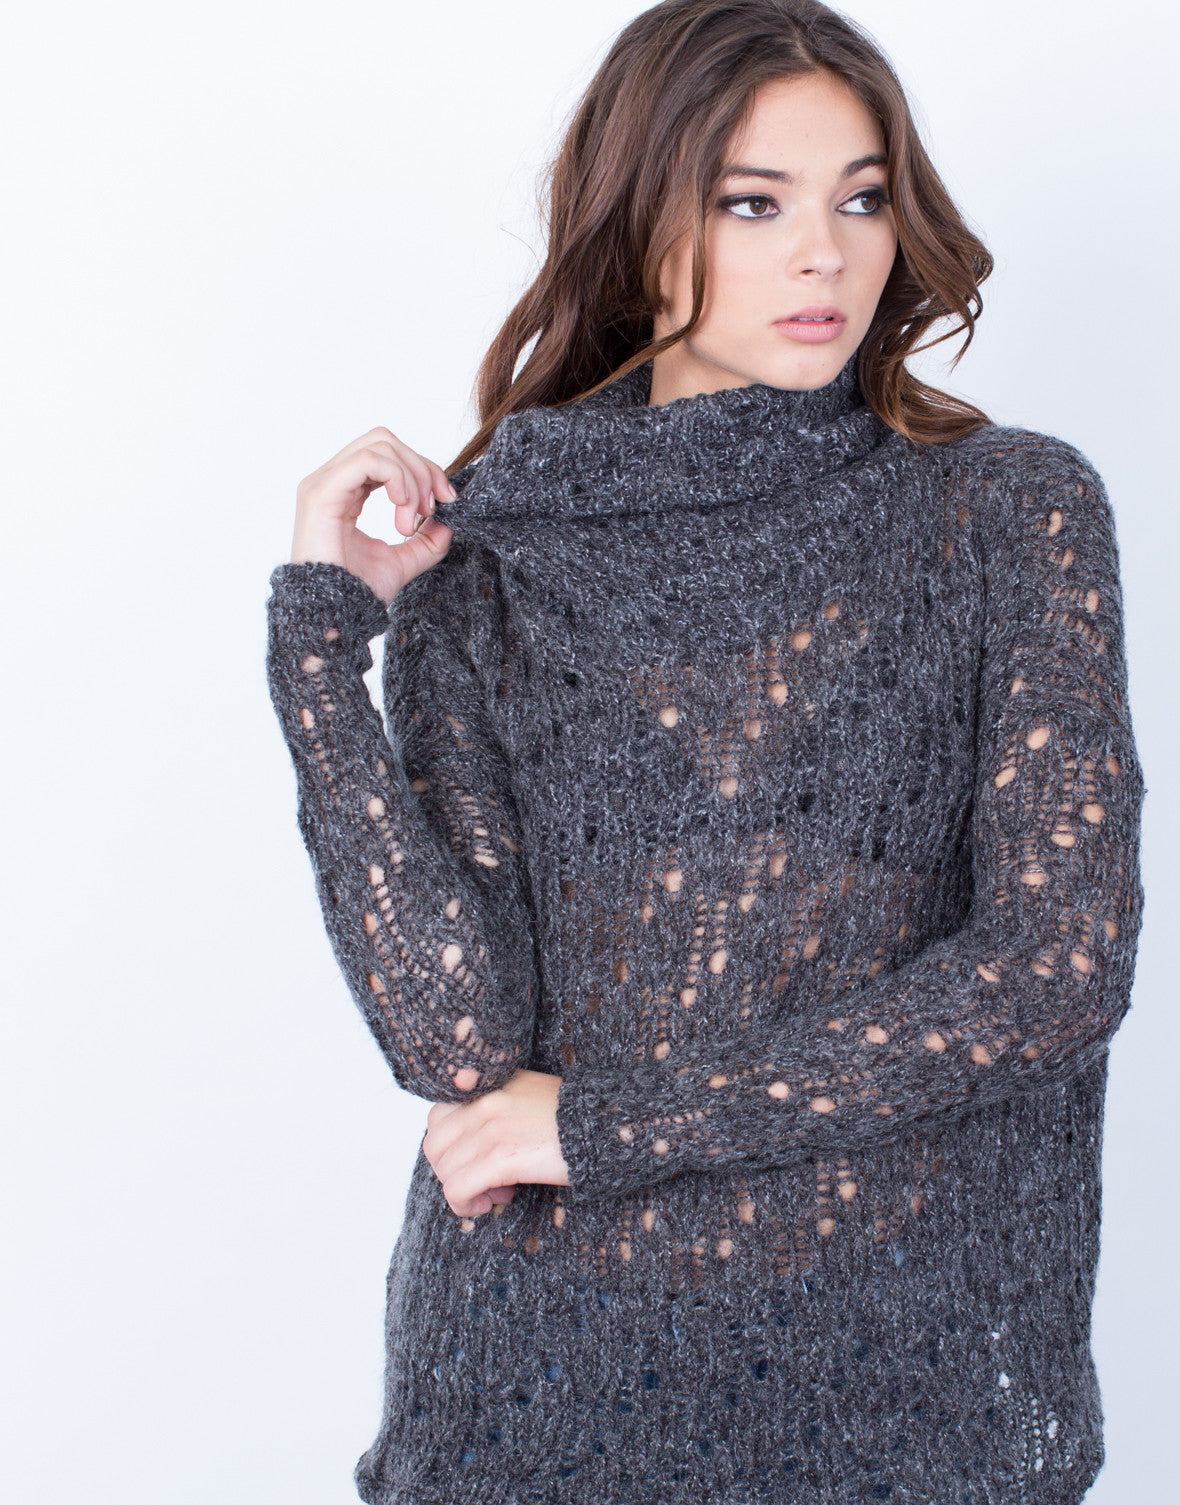 Detail of Holey Wool Sweater